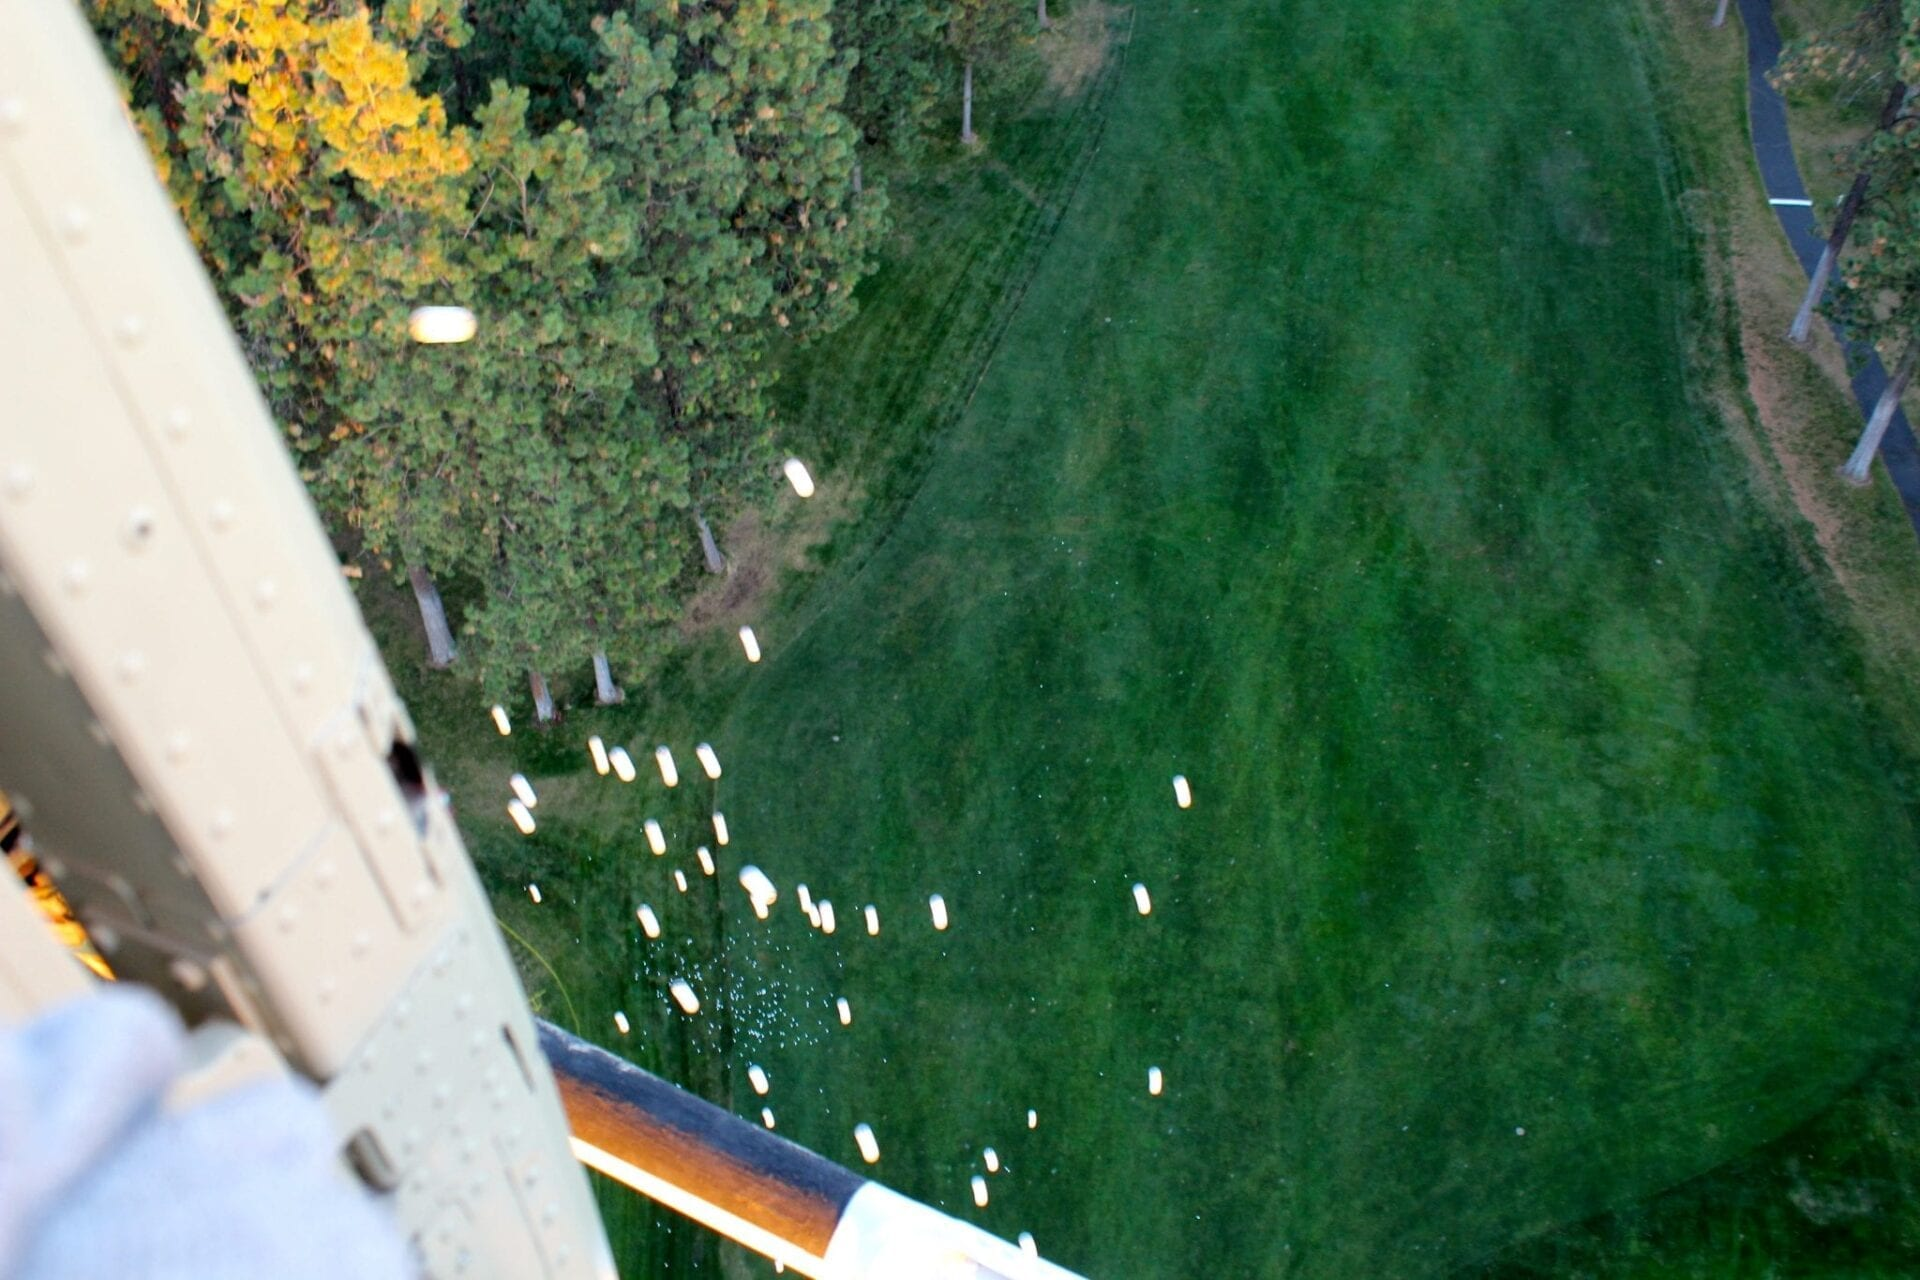 Golf balls drop from helicopter to the 18th green